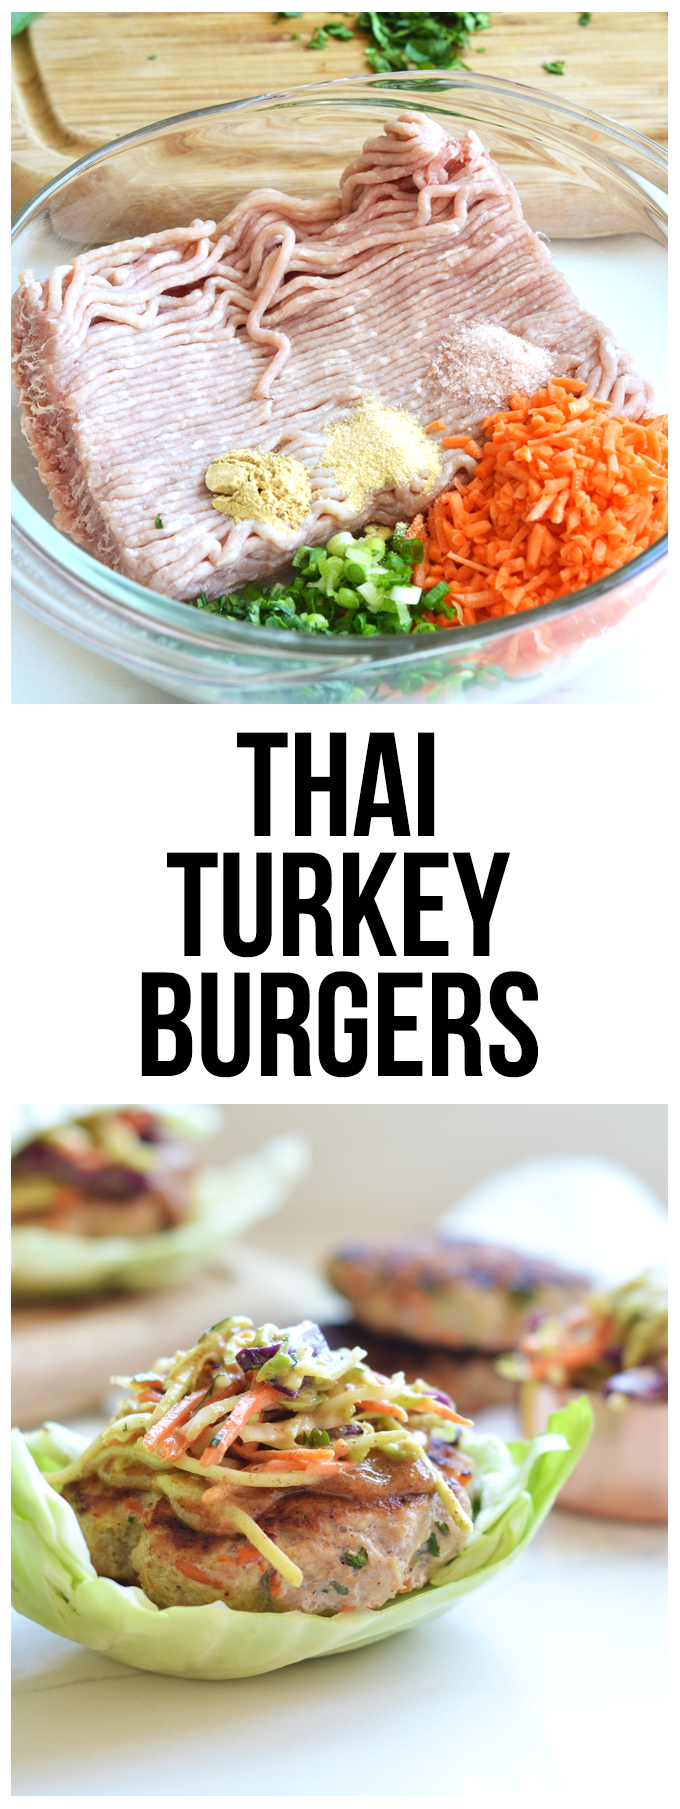 These Thai Turkey burgers are bursting with flavor and are clean and Whole30 compliant! Perfect meal for summer!